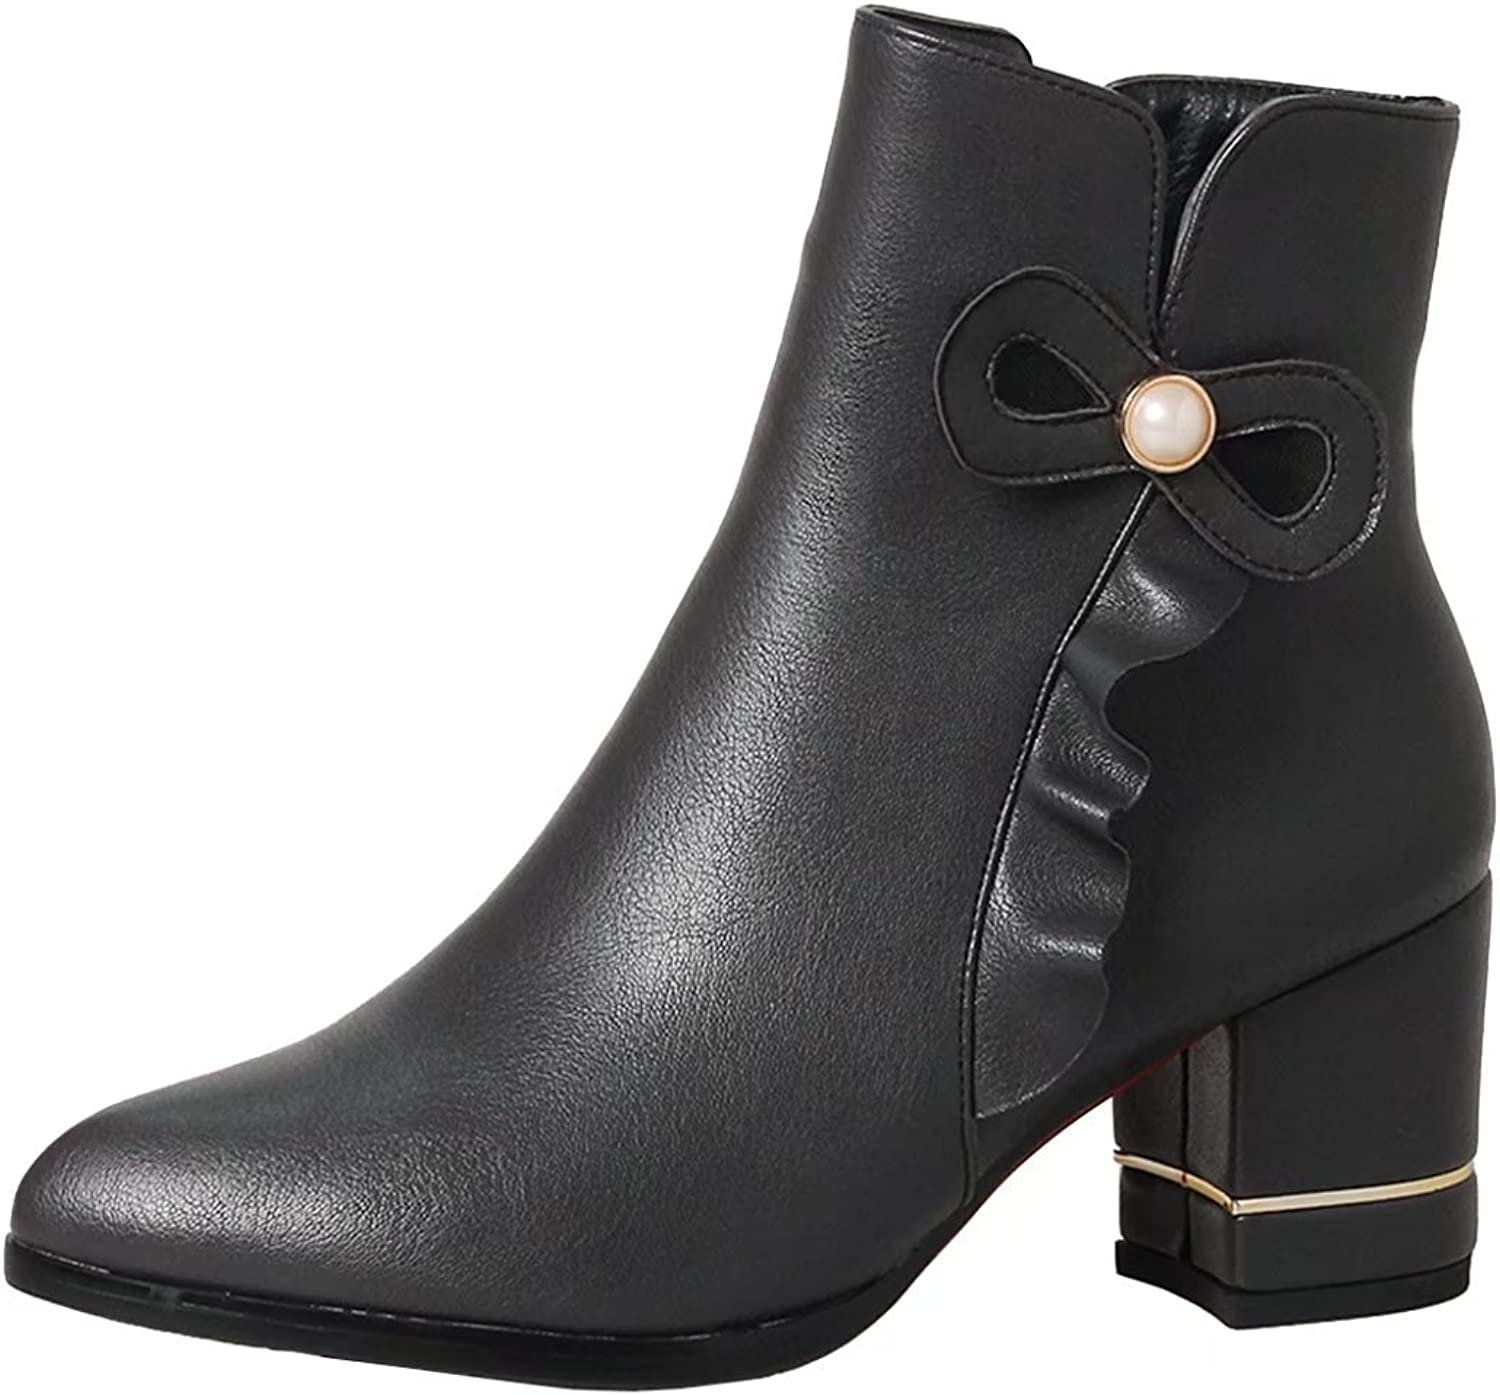 AIYOUMEI Women's Pointed Toe Block Heel Booties Autumn Winter Ankle Boots with Bow